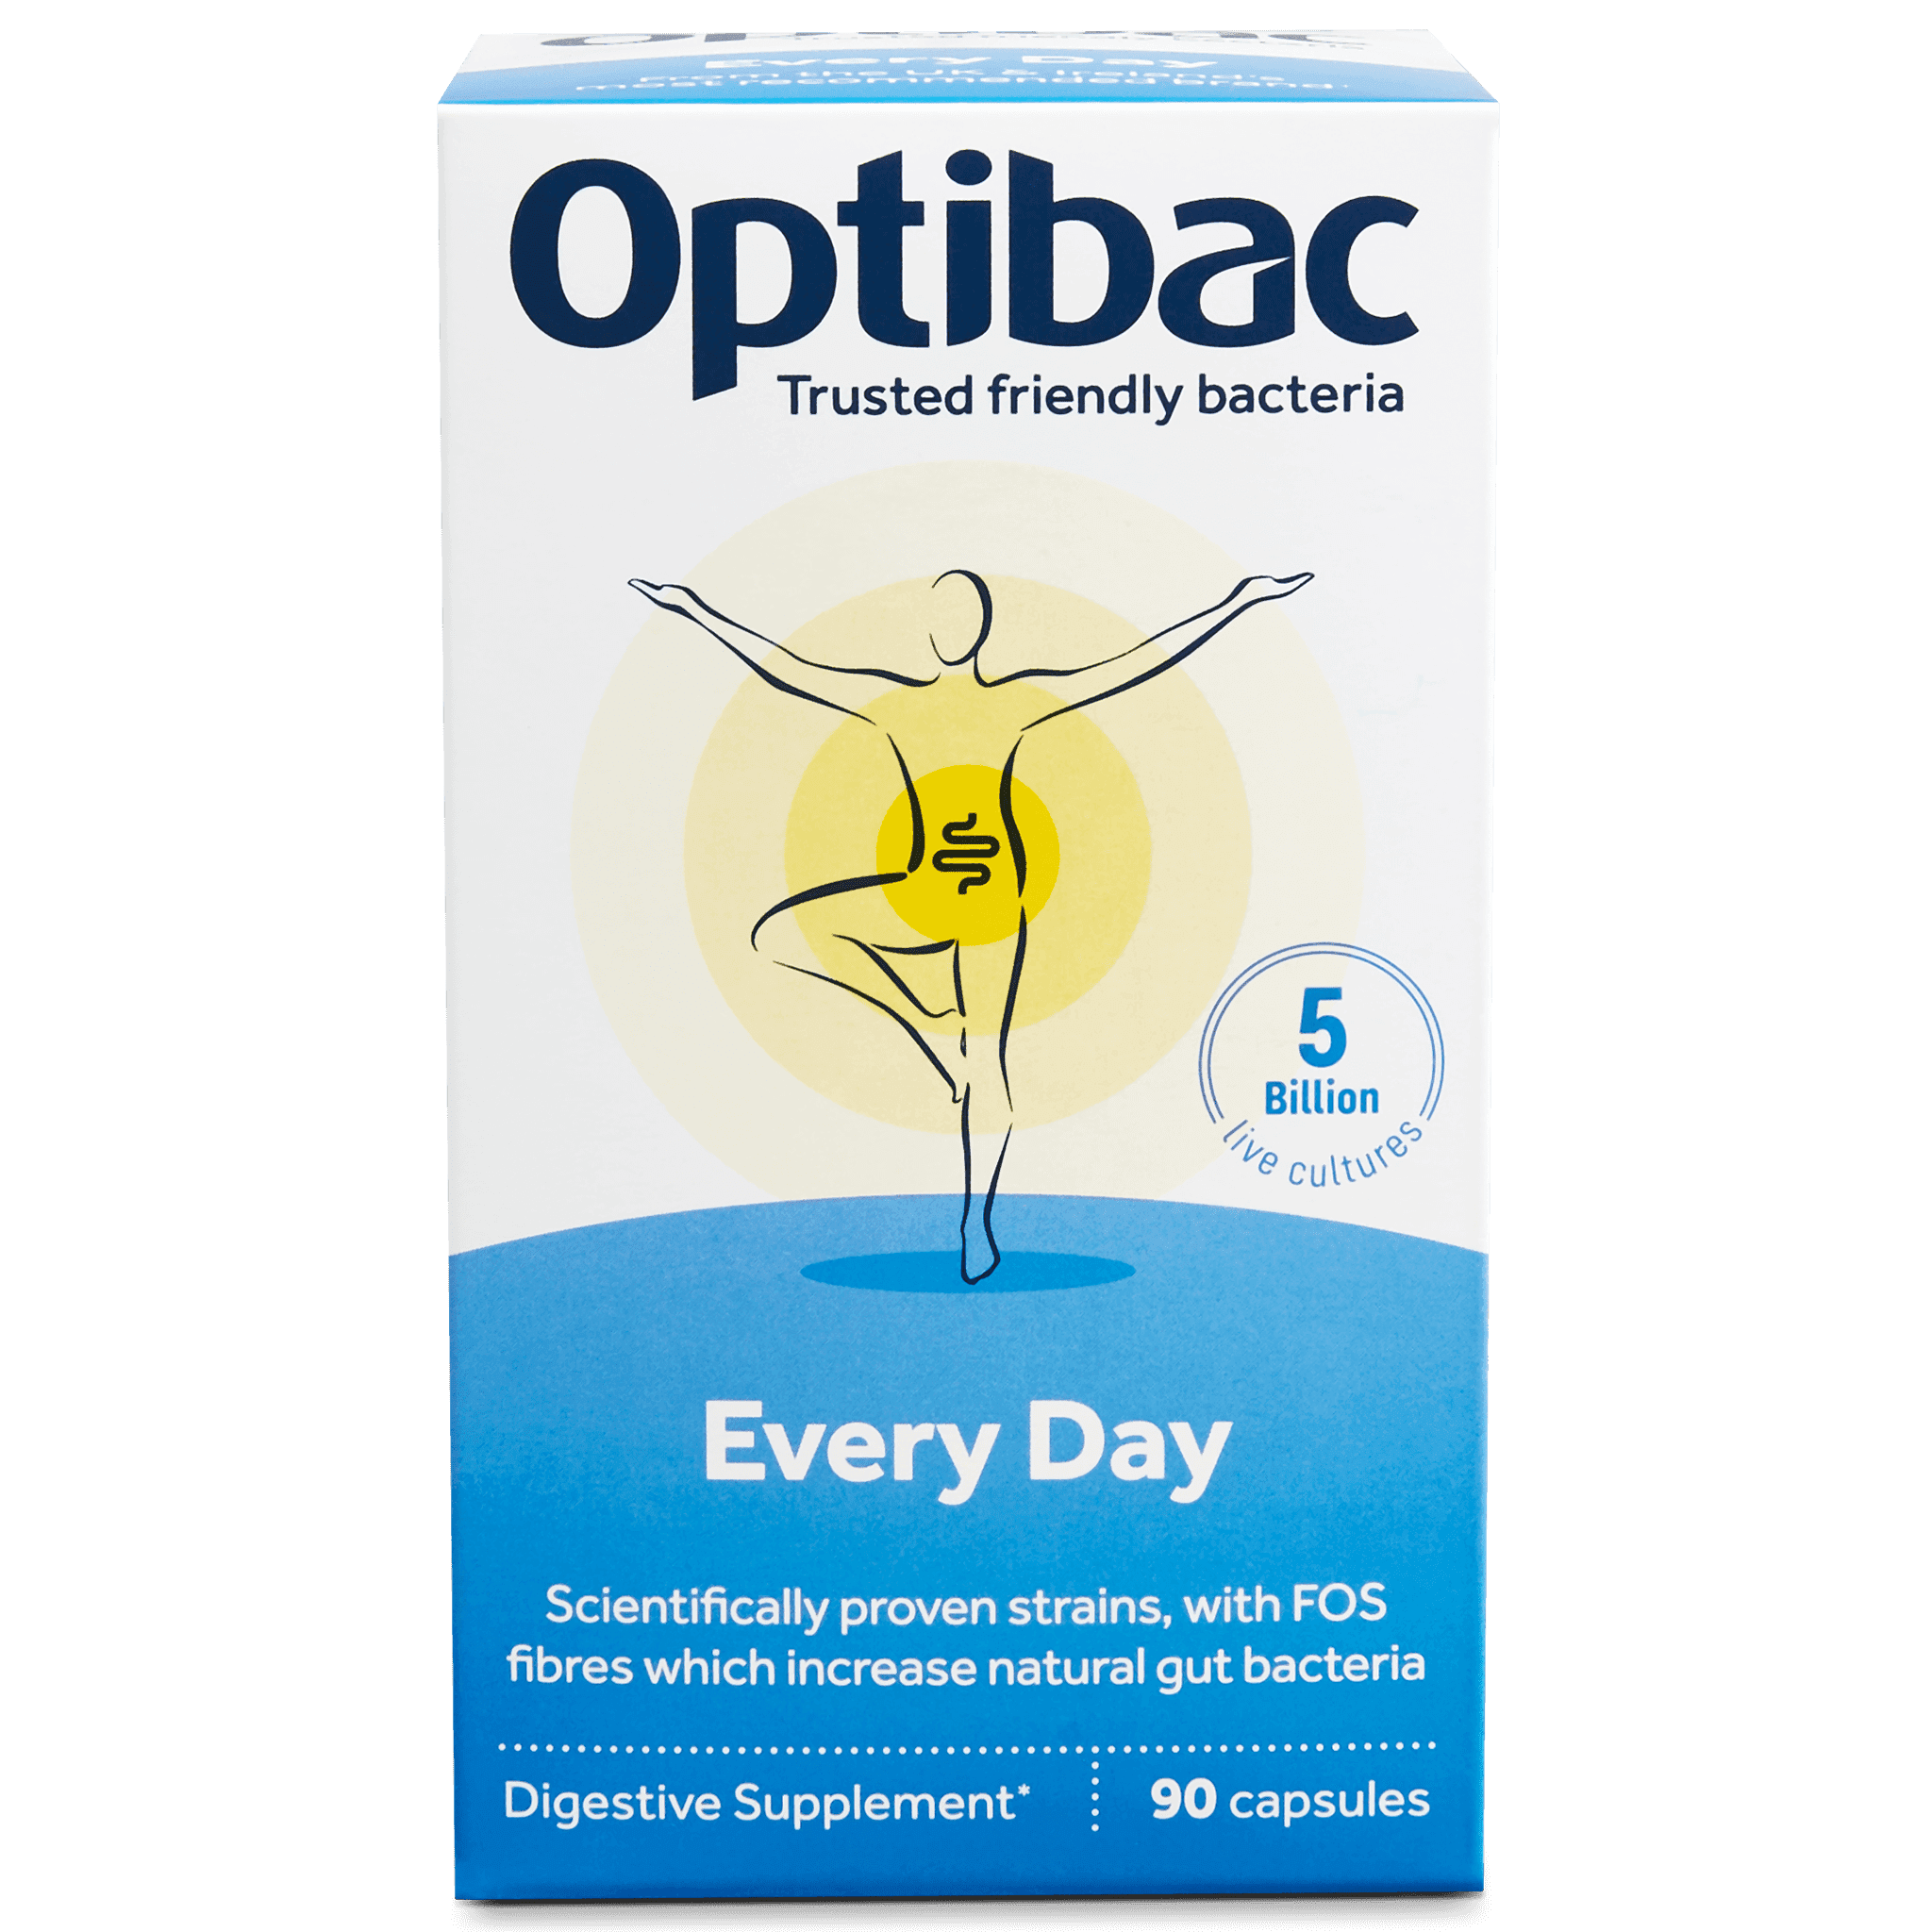 Optibac Probiotics For every day (90 capsules) pack front